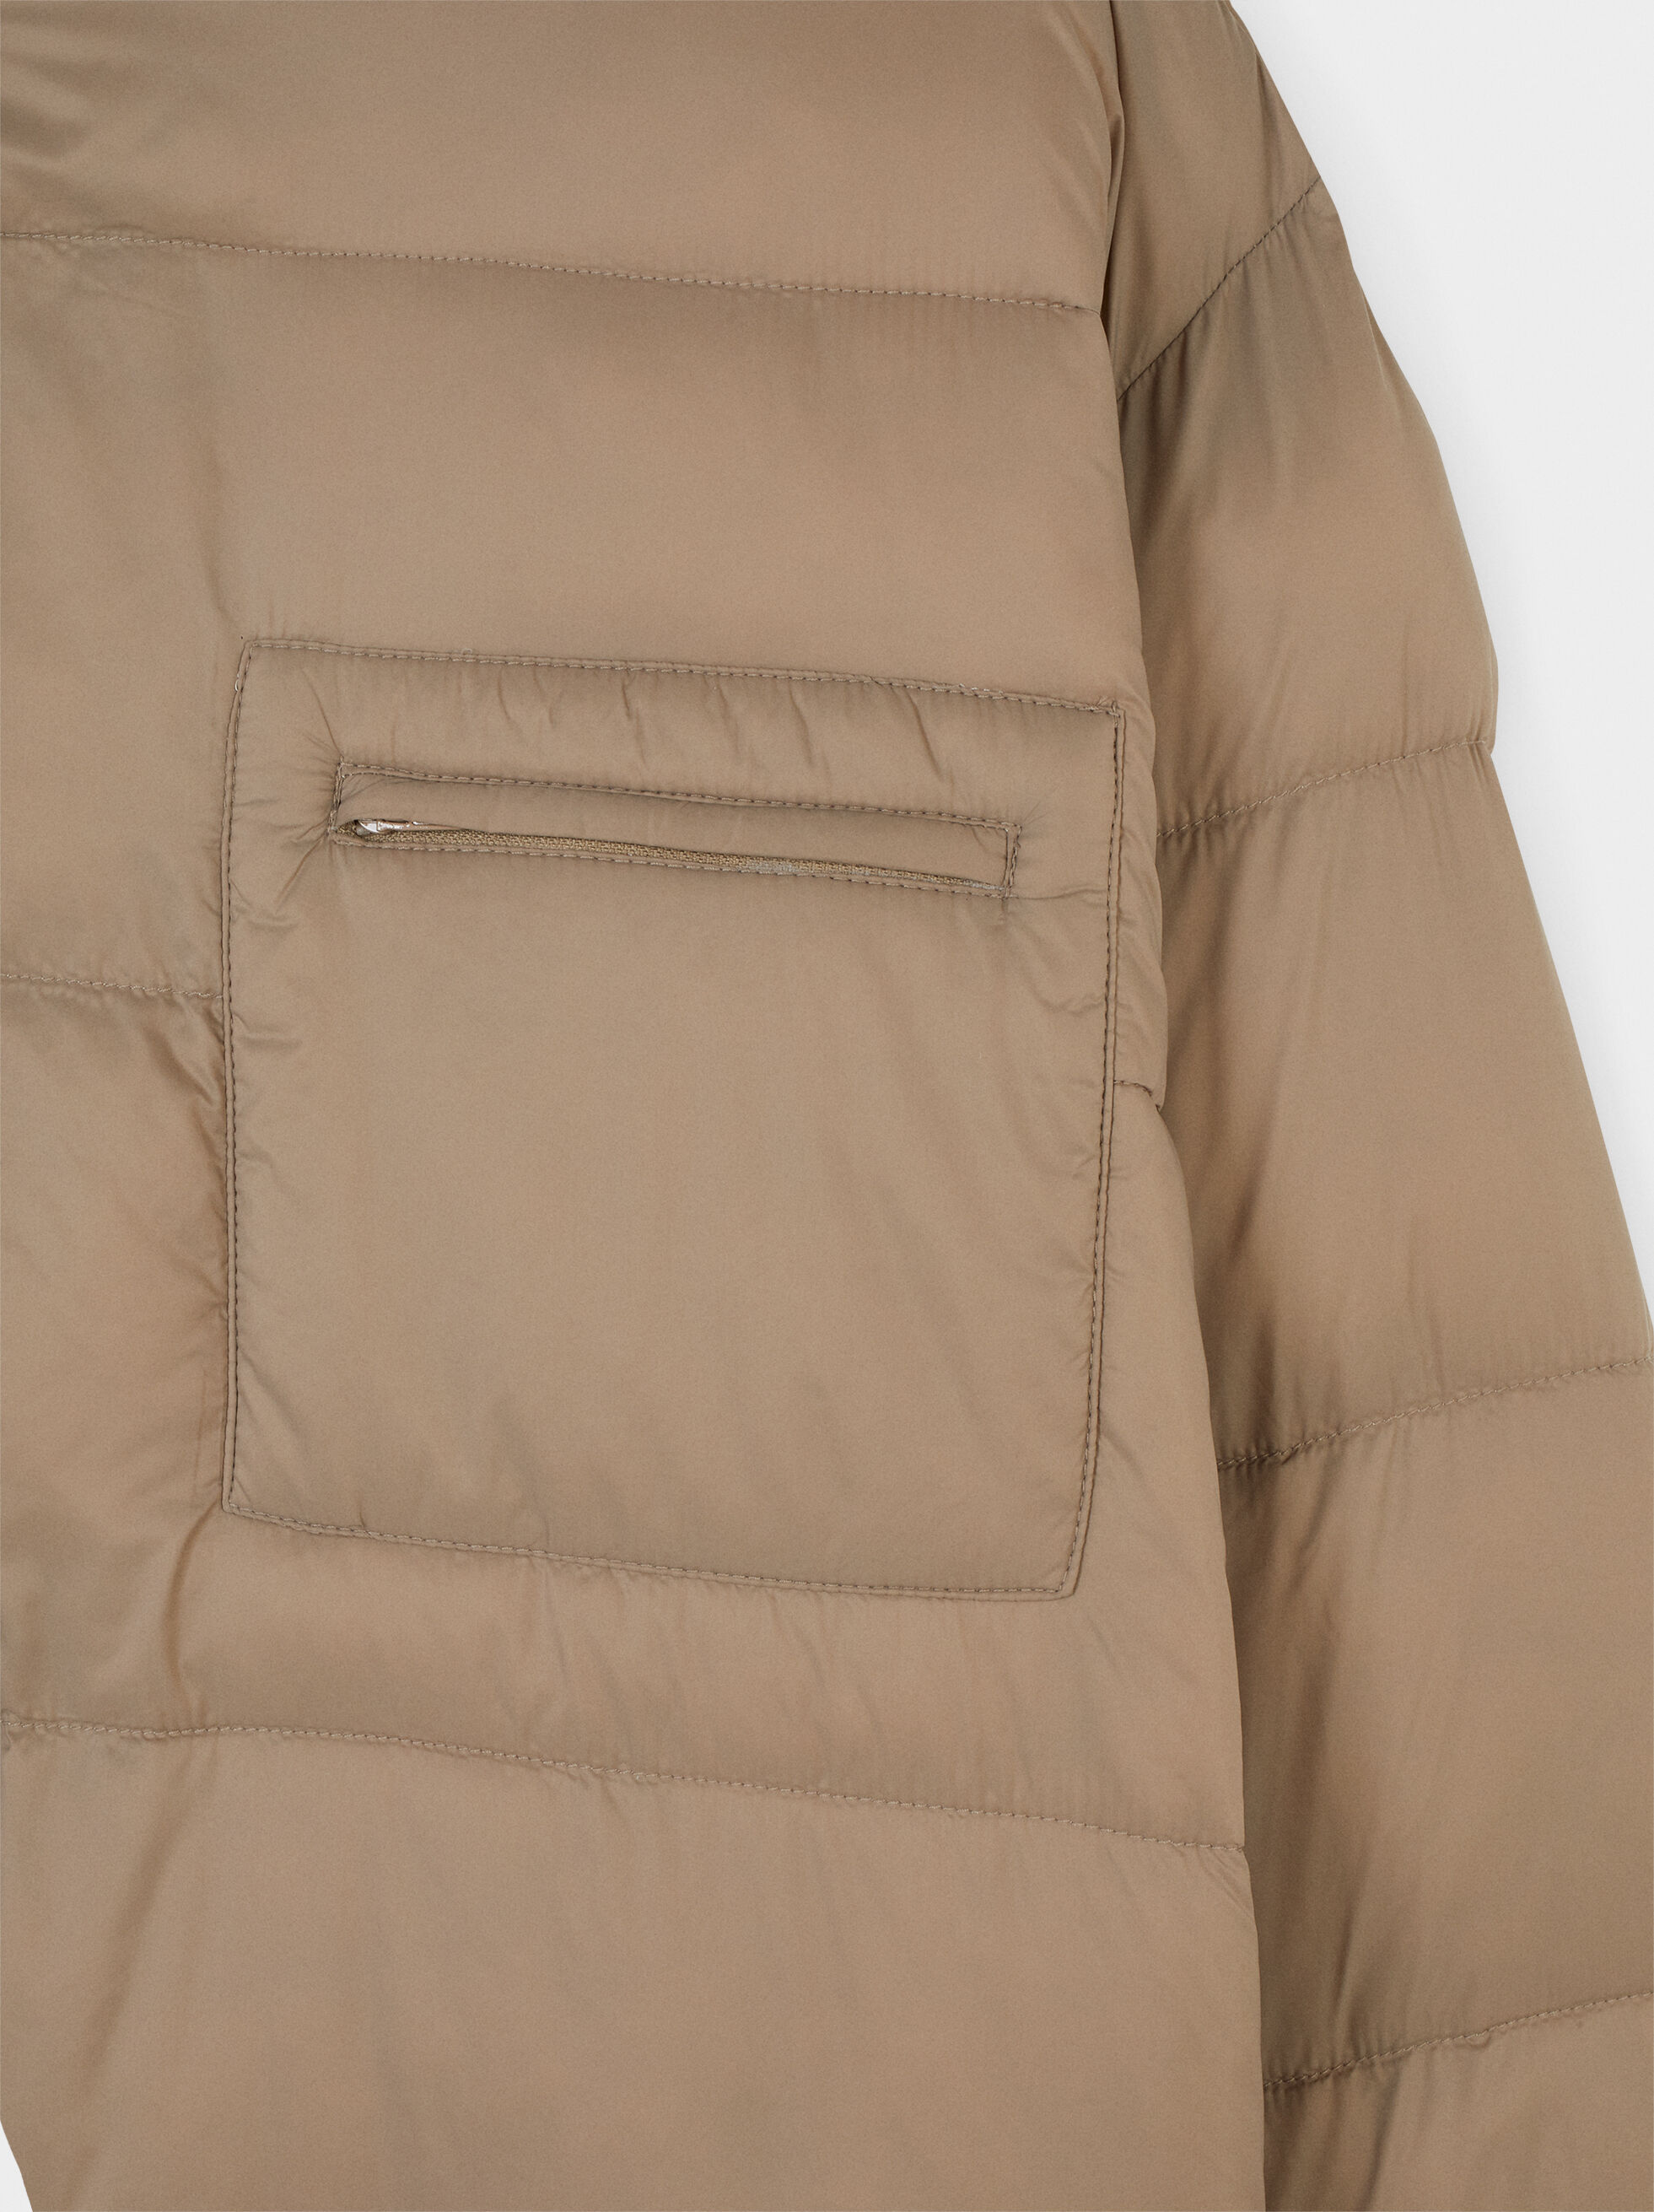 Button-Up Puffer Coat, Beige, hi-res